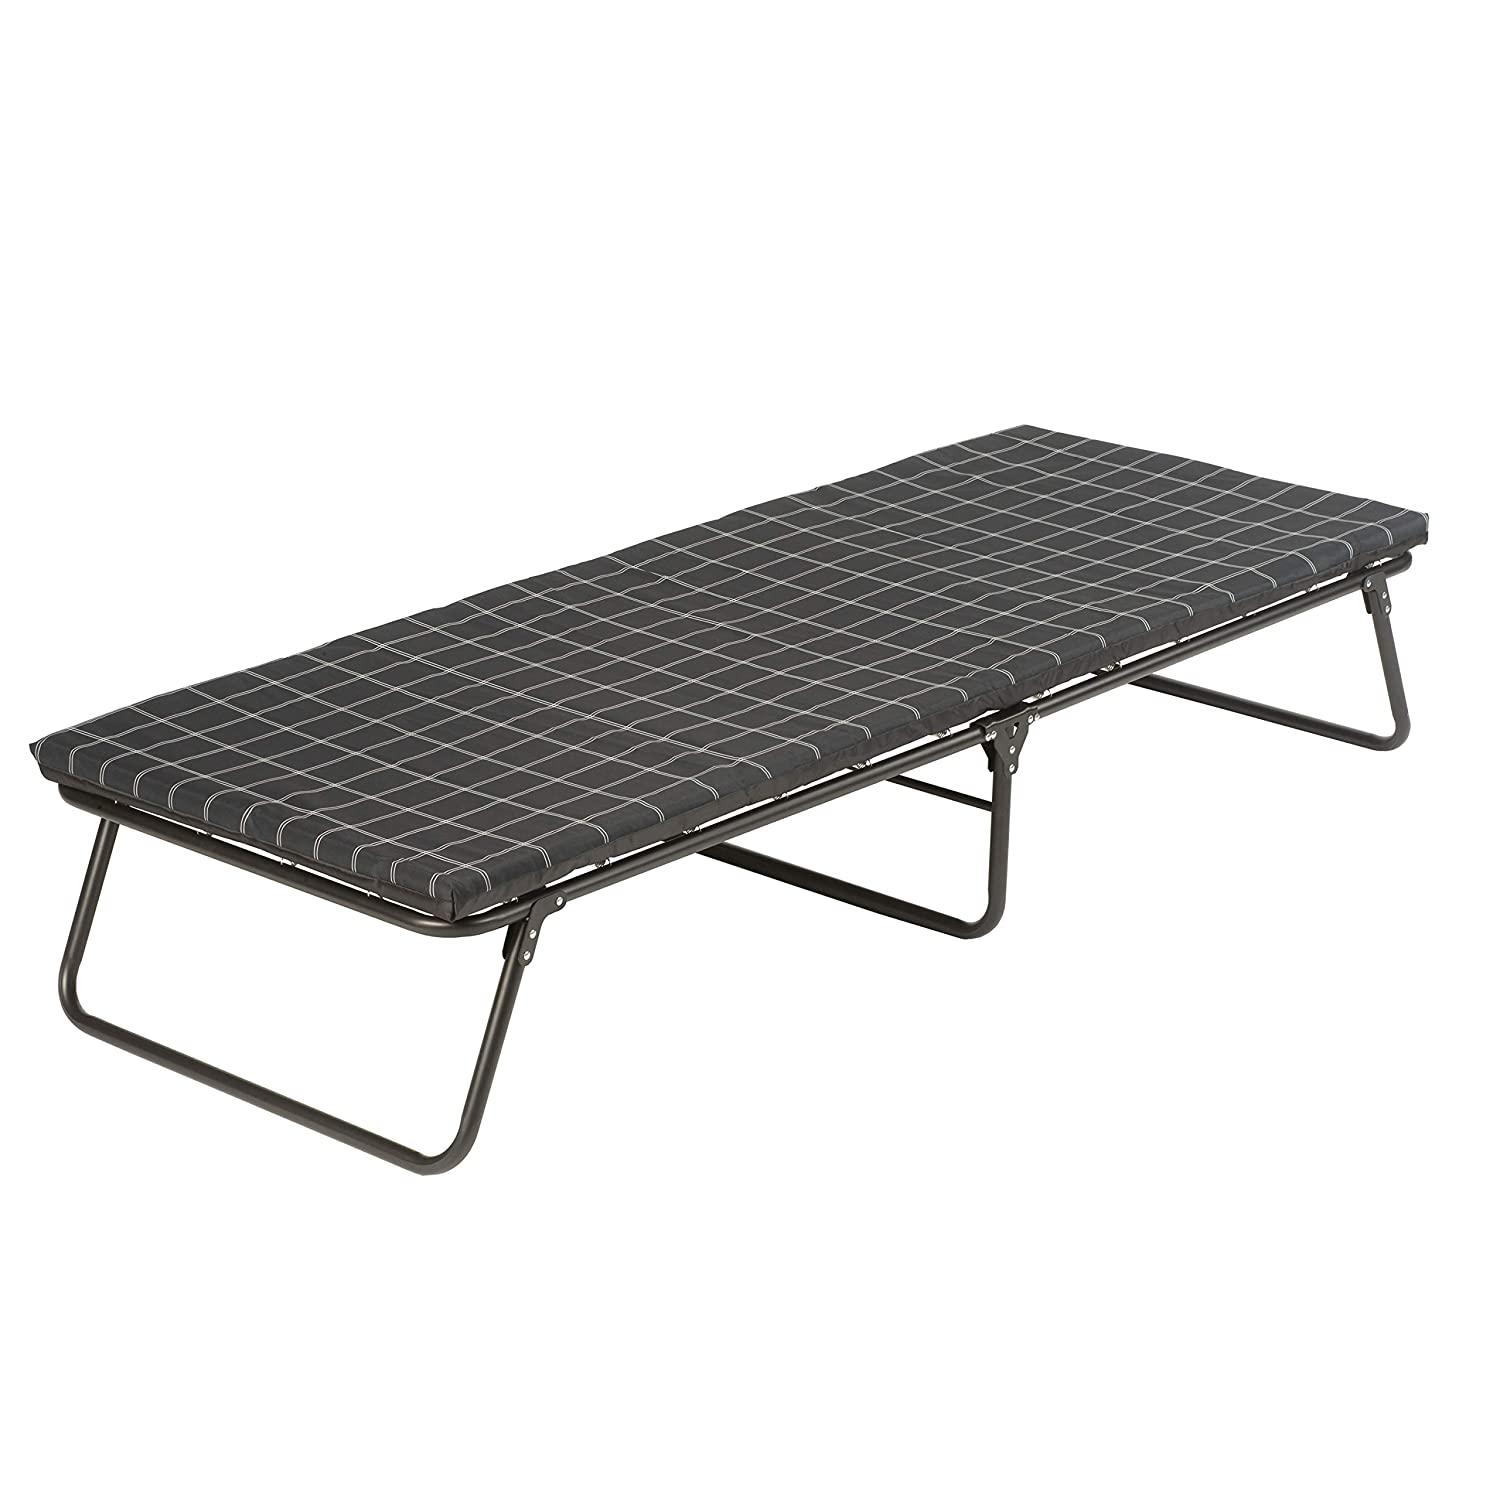 Best Camping Cot 7